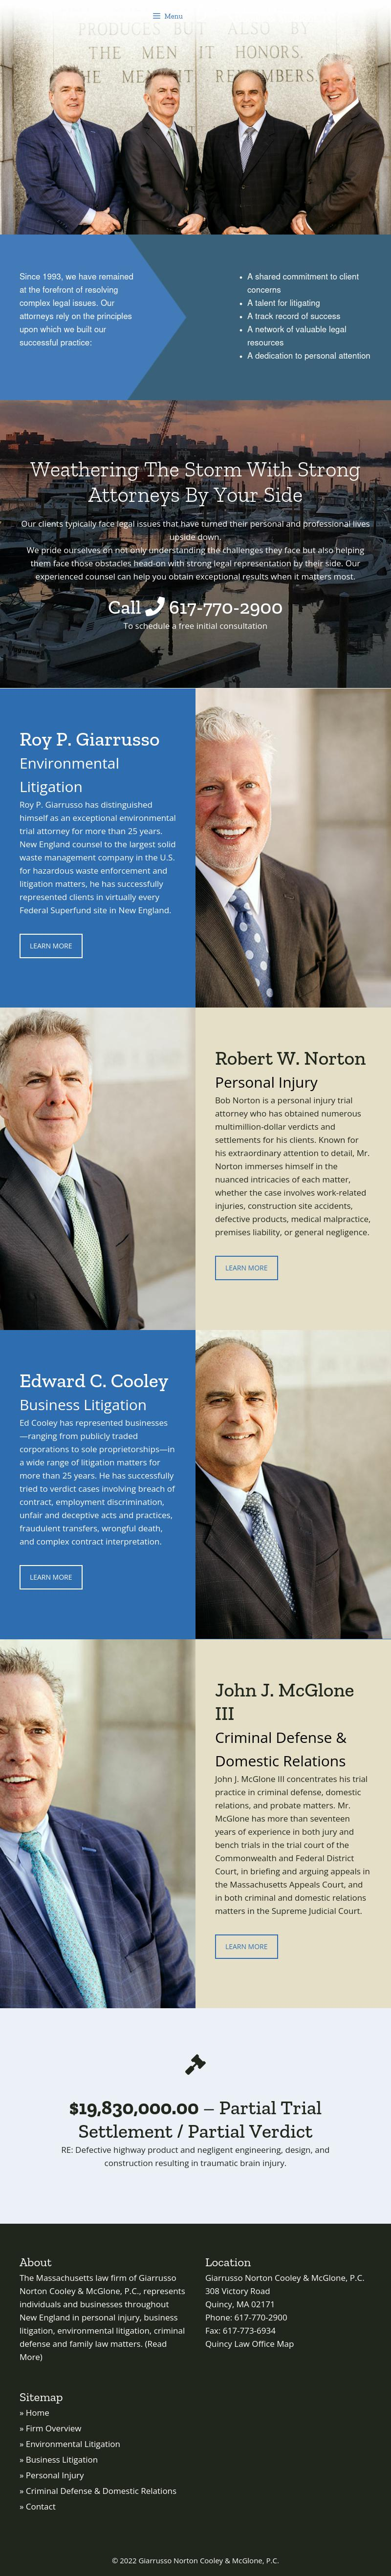 Giarrusso Norton Cooley & McGlone, P.C. - Quincy MA Lawyers